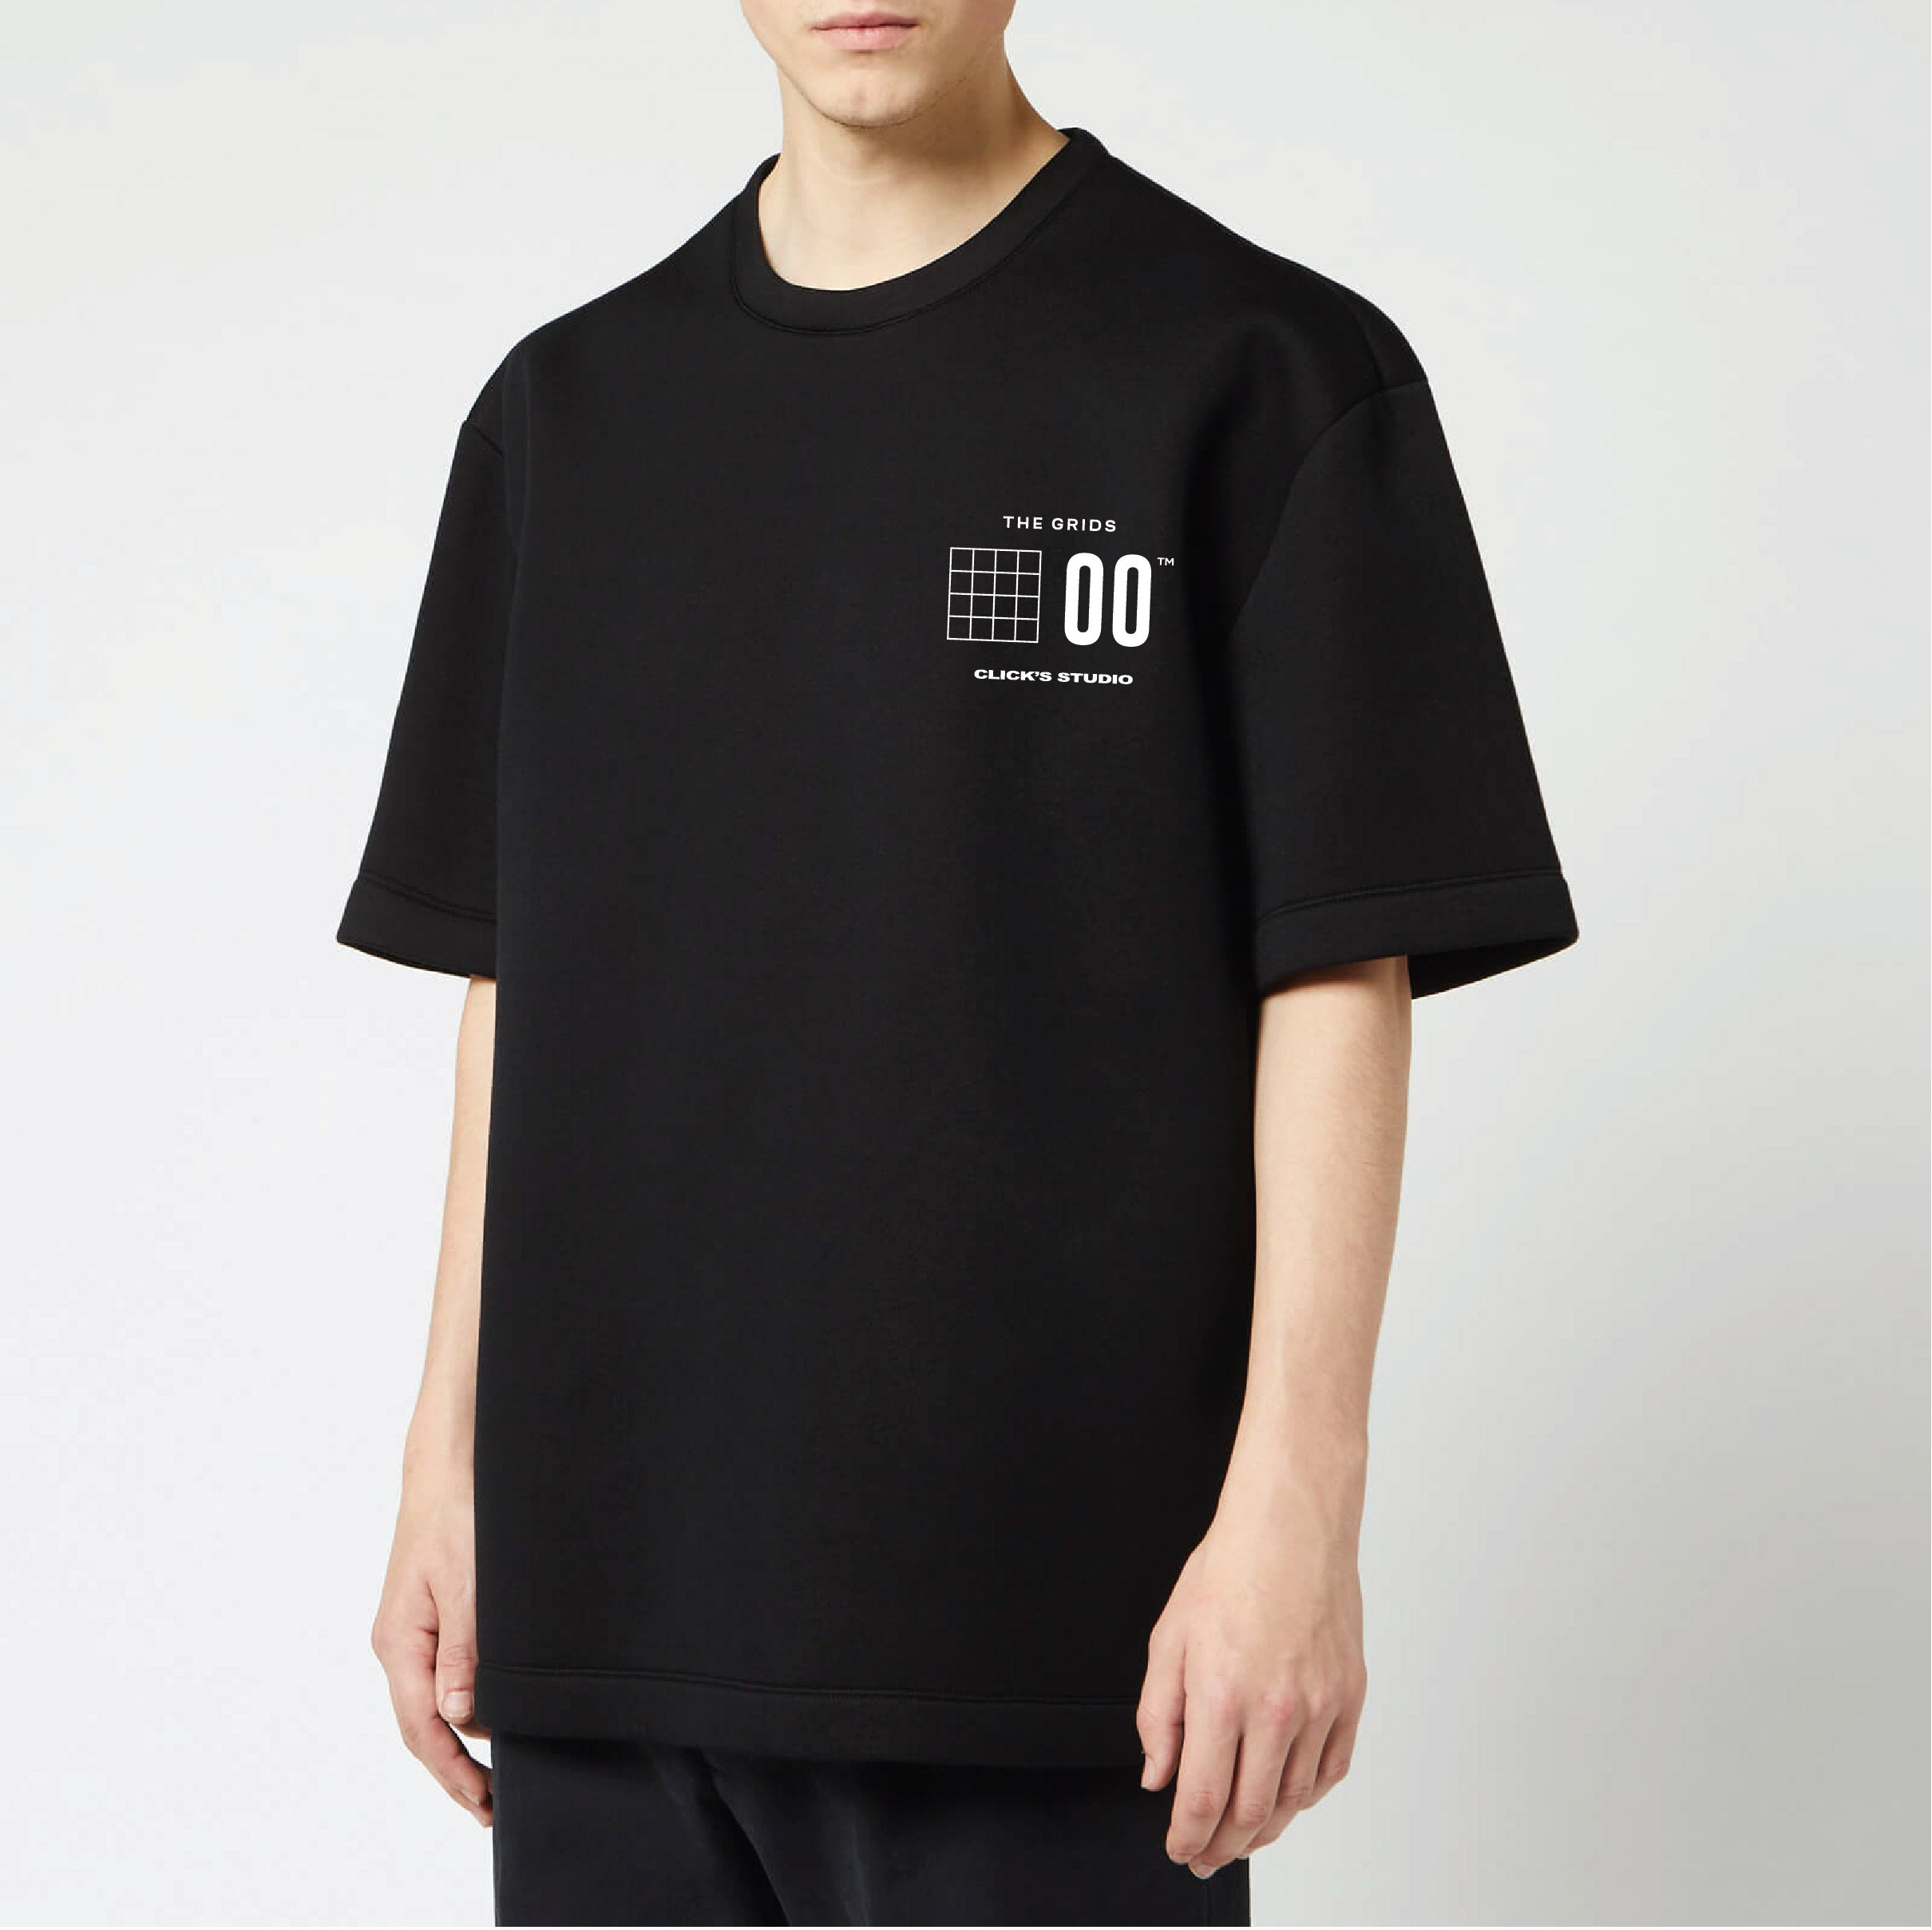 [4pcs BUNDLE] The Grids Tee by Click's